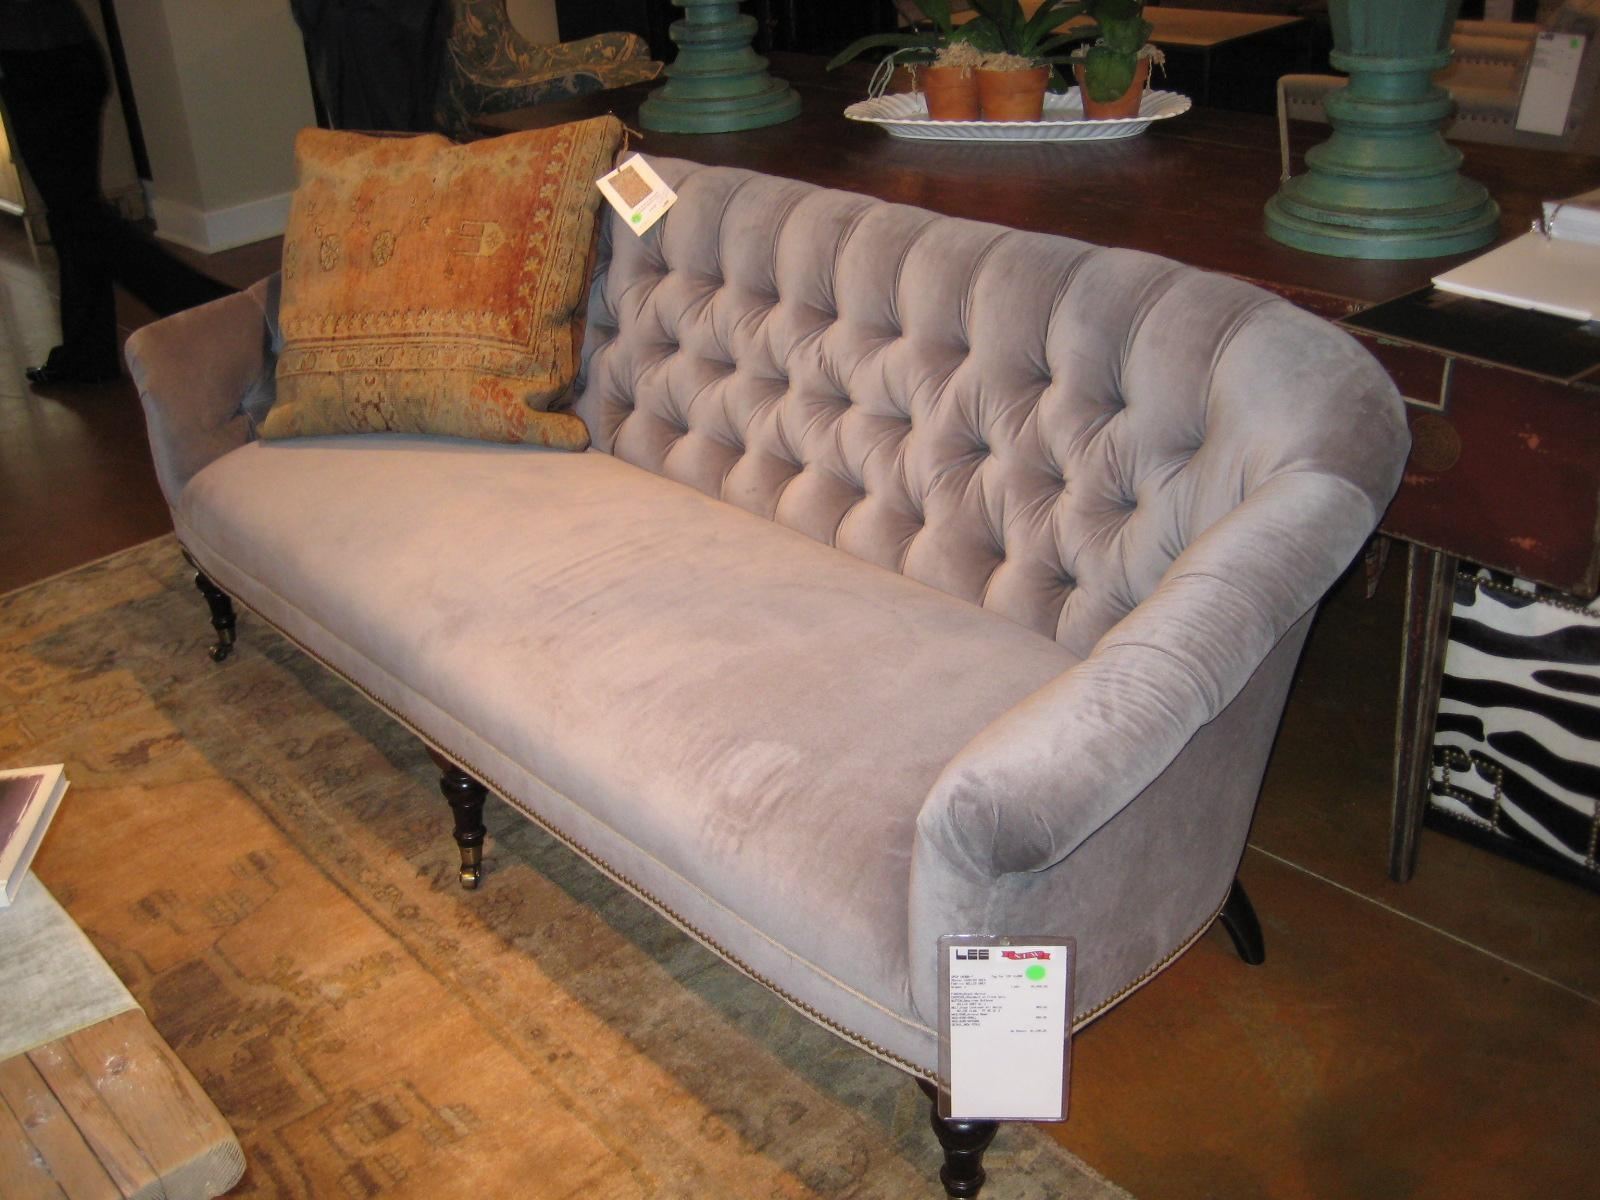 Tufted Sofas Toronto | Tehranmix Decoration Throughout Affordable Tufted Sofa (Image 20 of 20)